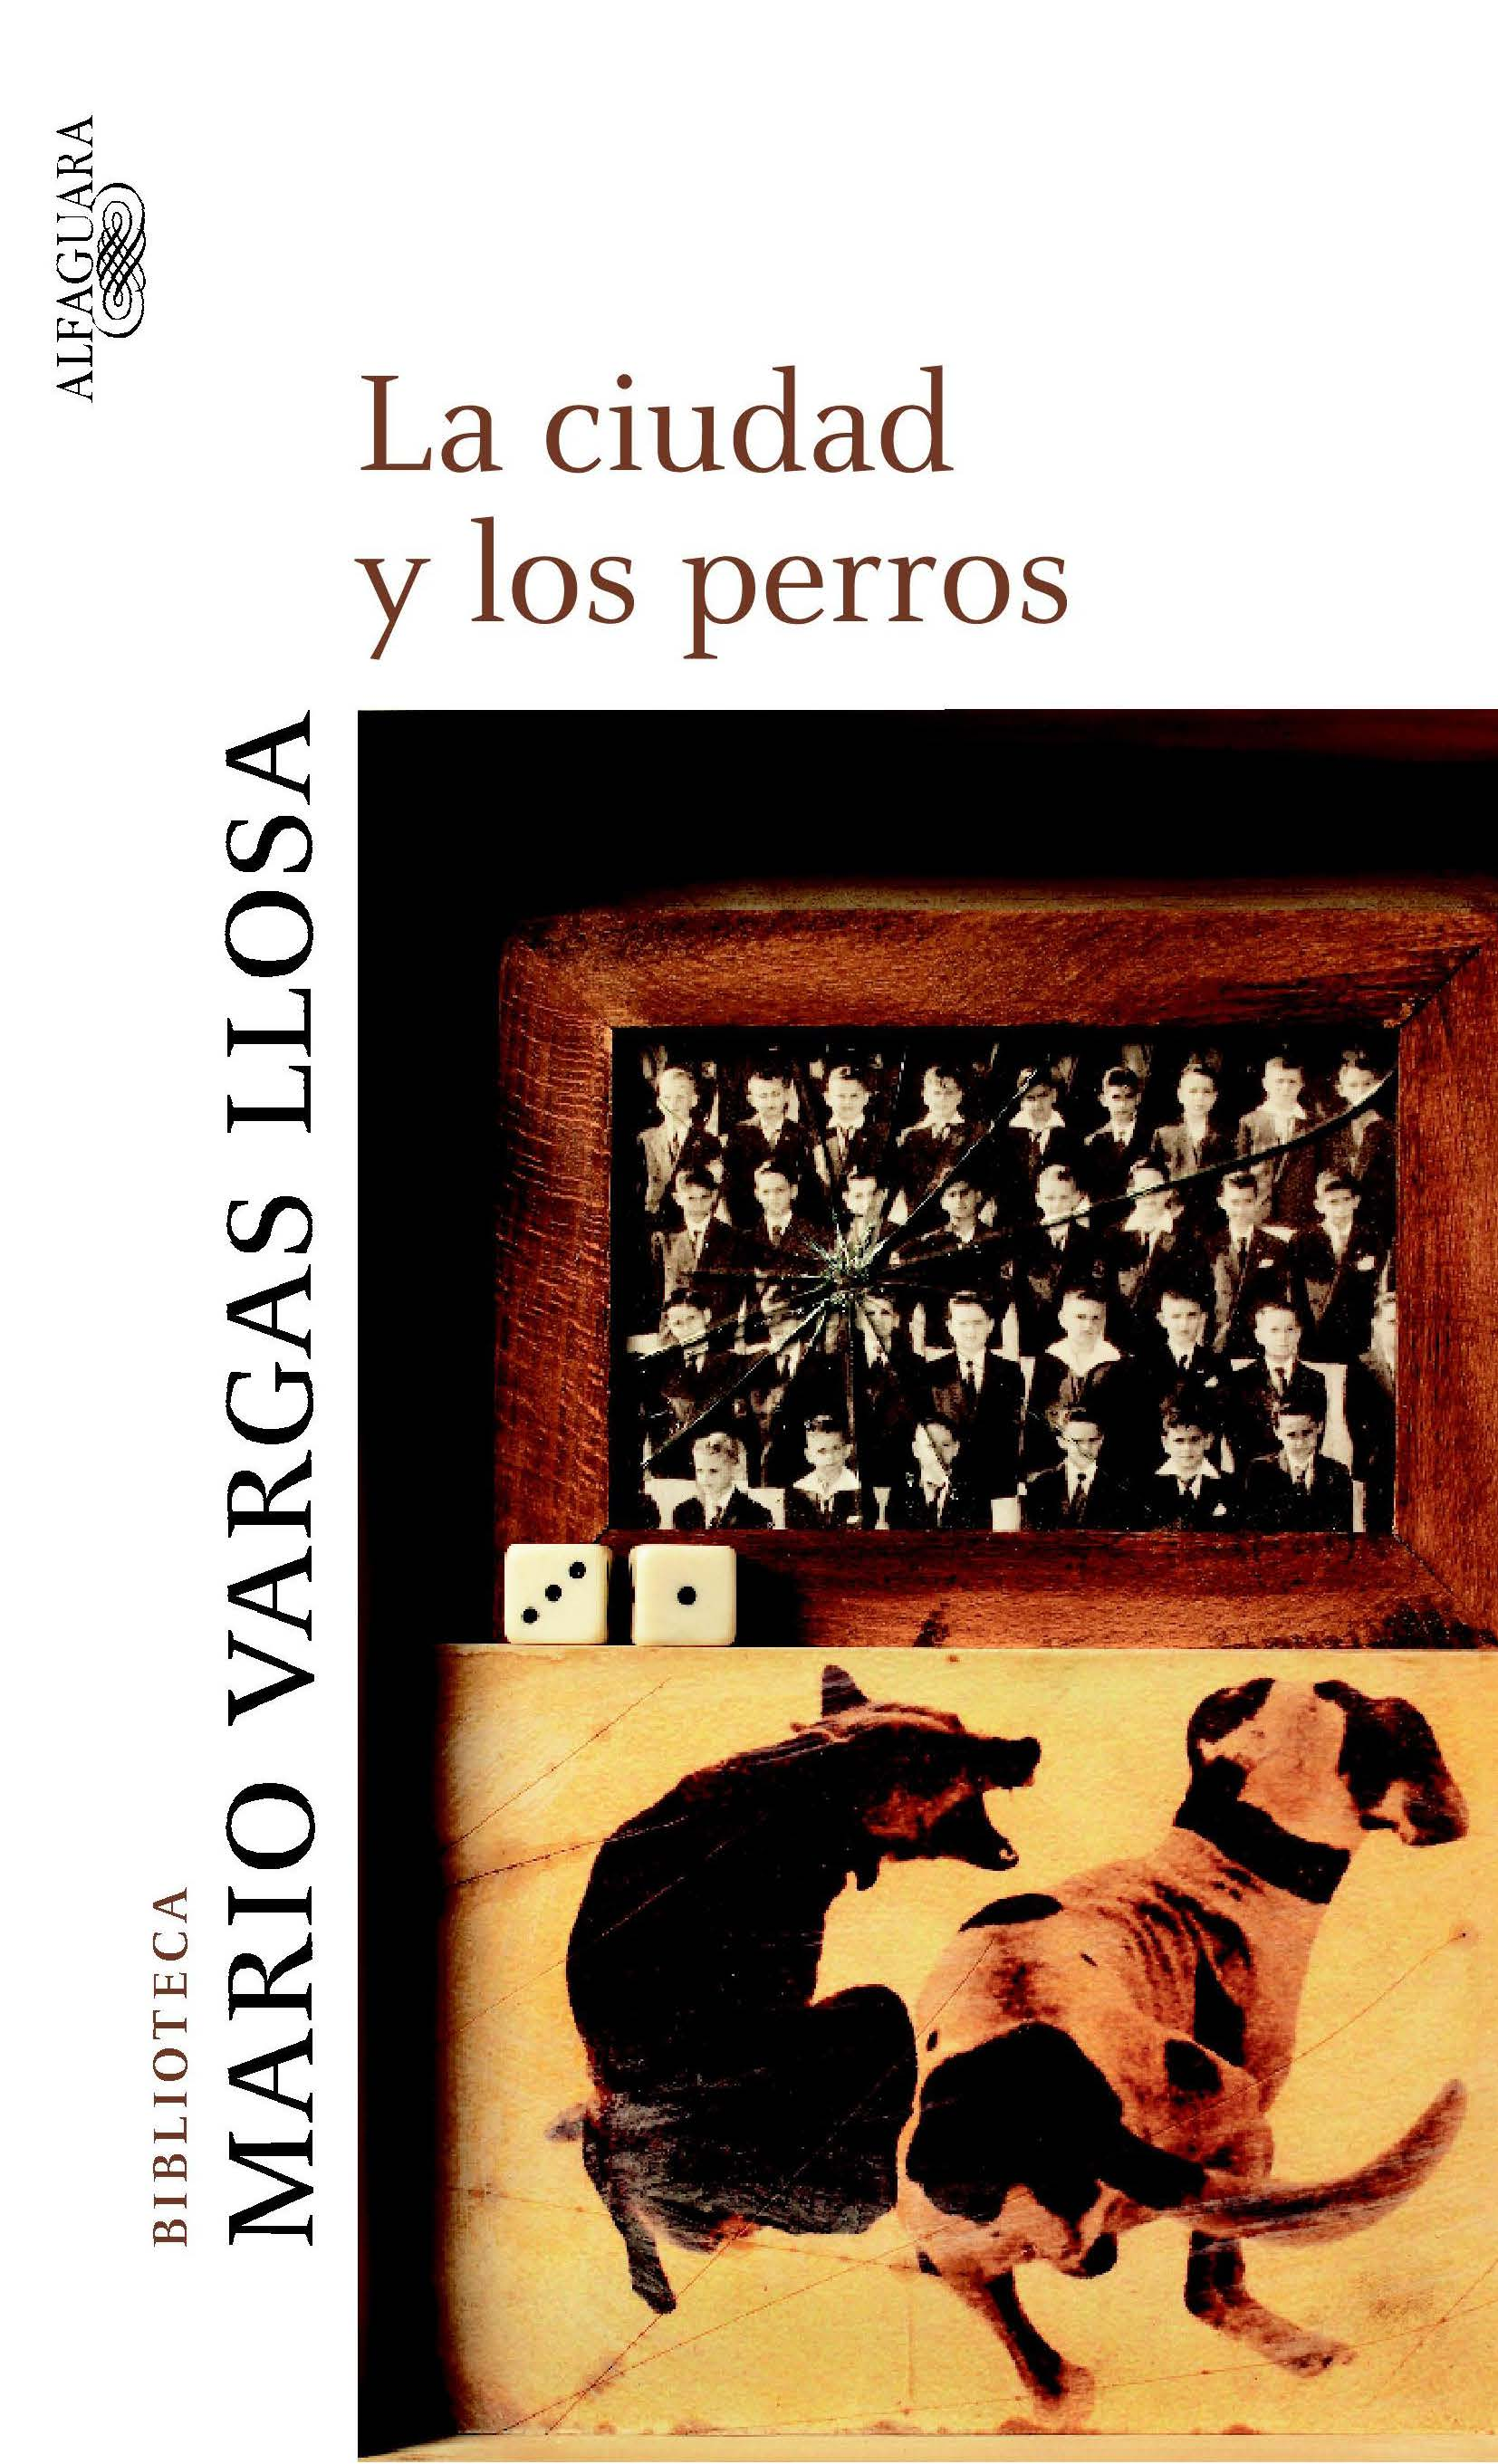 https://blogs.uoregon.edu/lcylp/files/2016/03/LCP_Biblioteca-Vargas-Llosa-xvvw01.jpg